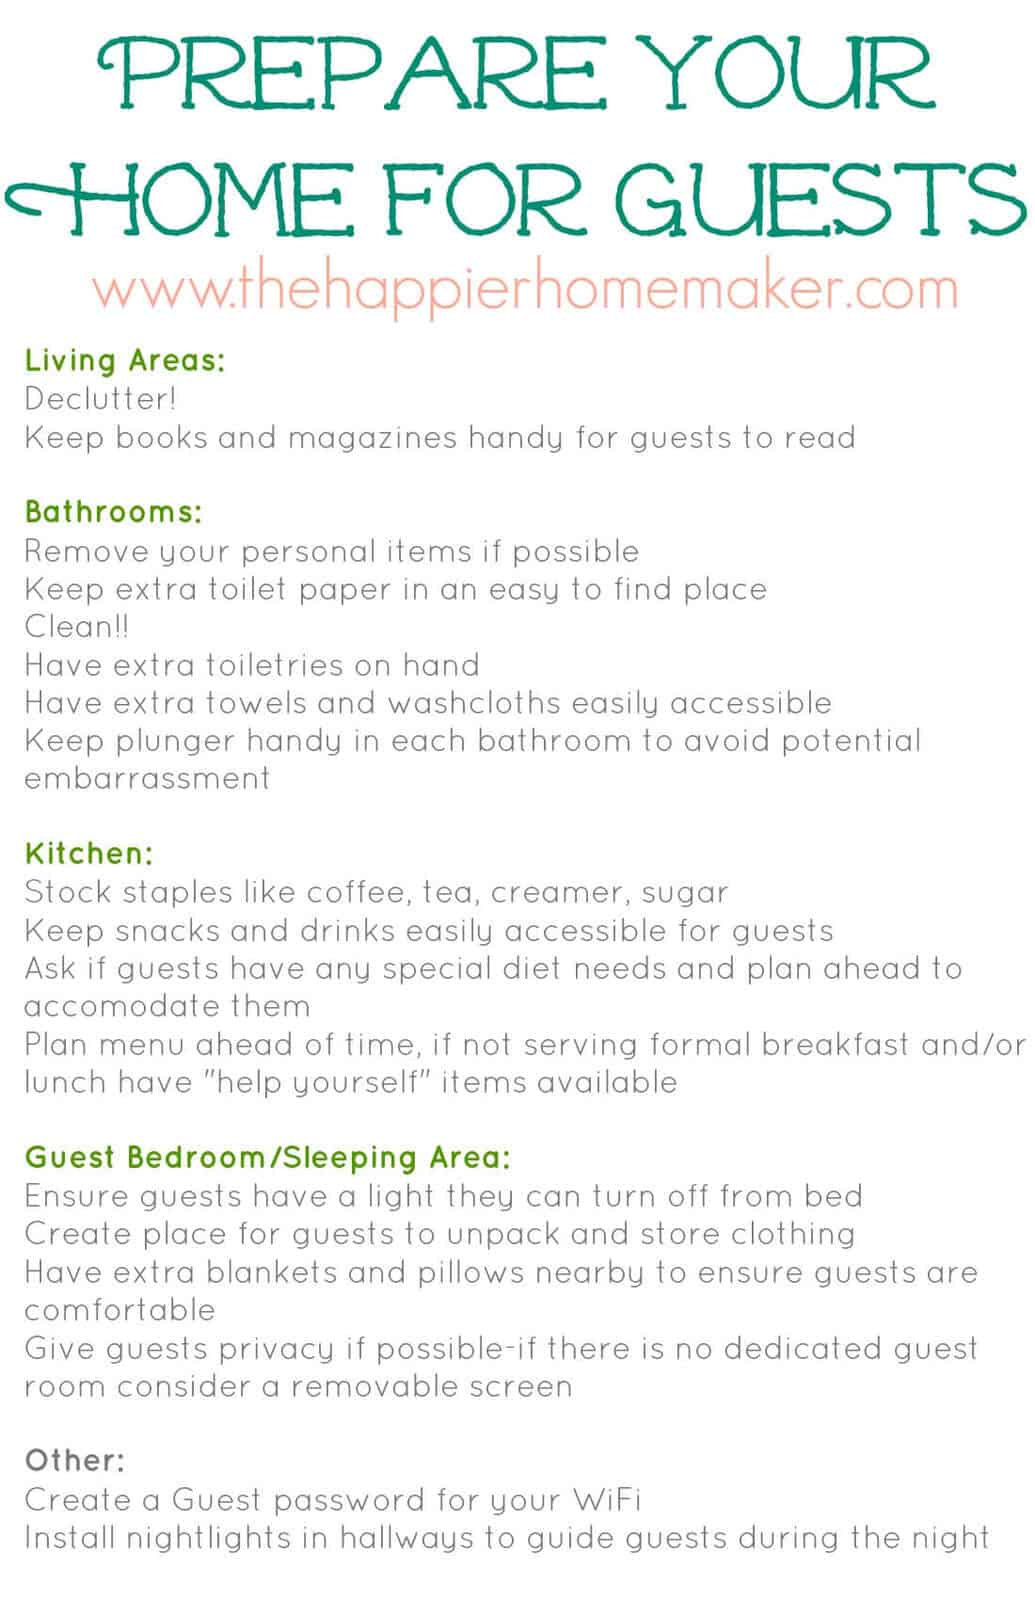 A holiday guest visit checklist for different rooms in your home